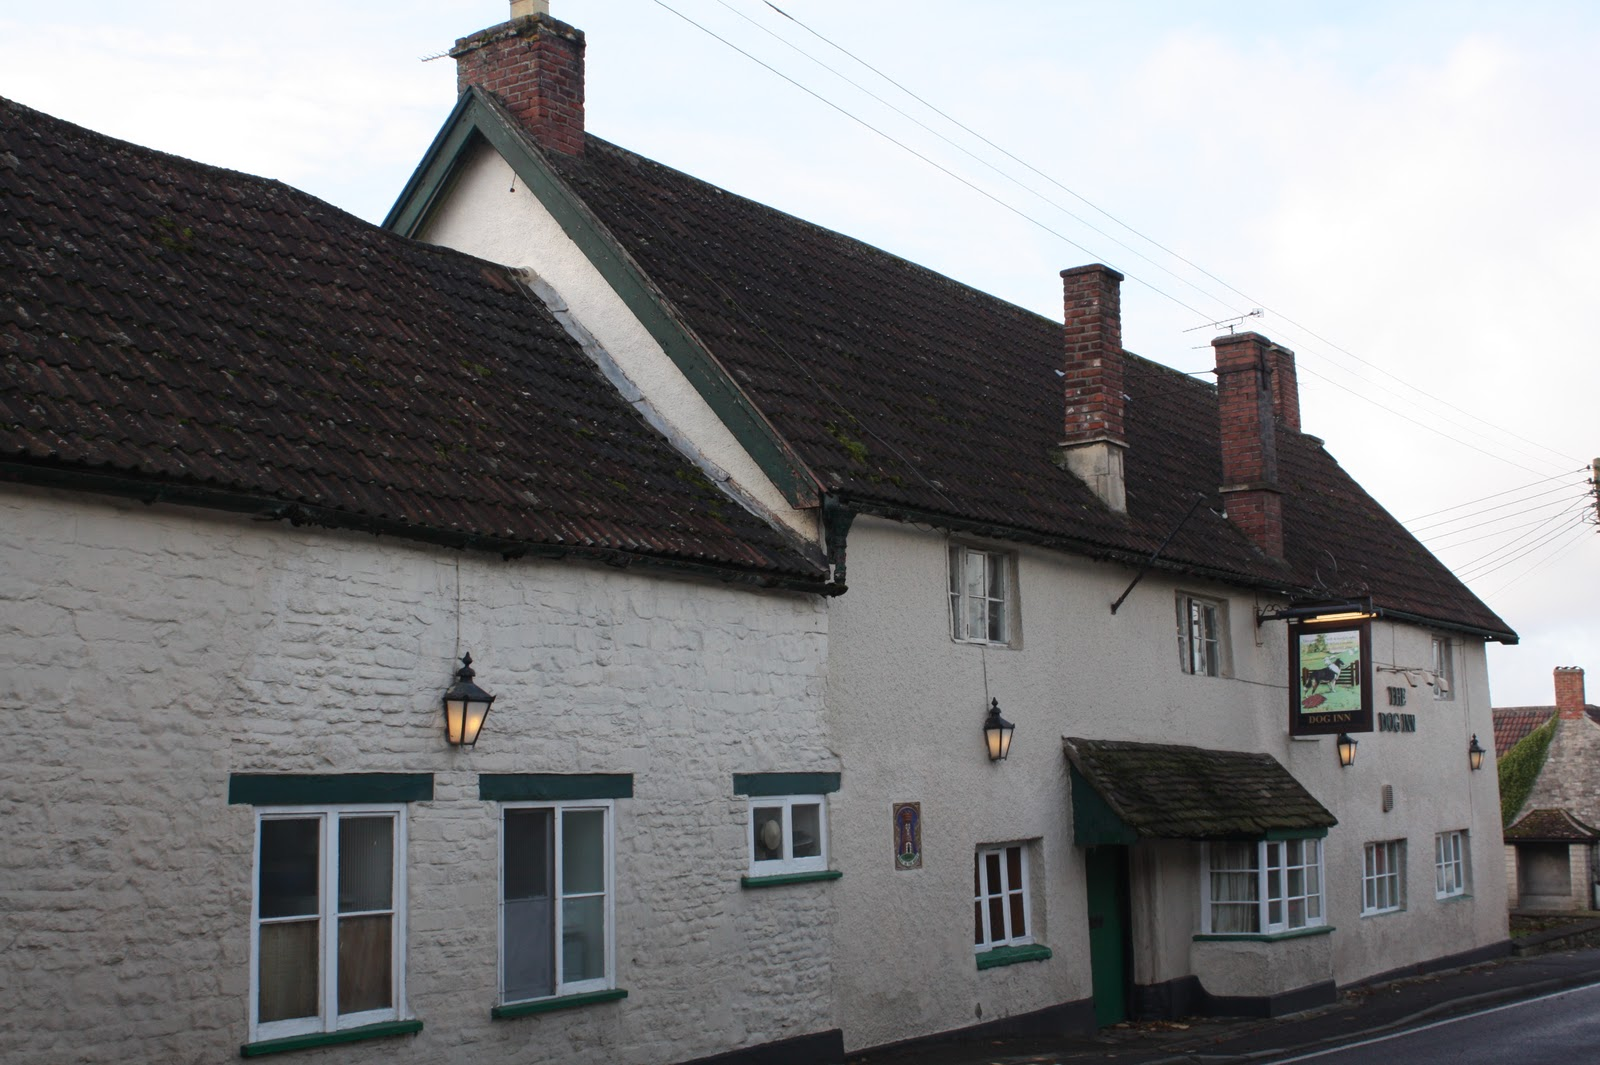 The Dog Inn, Old Sodbury